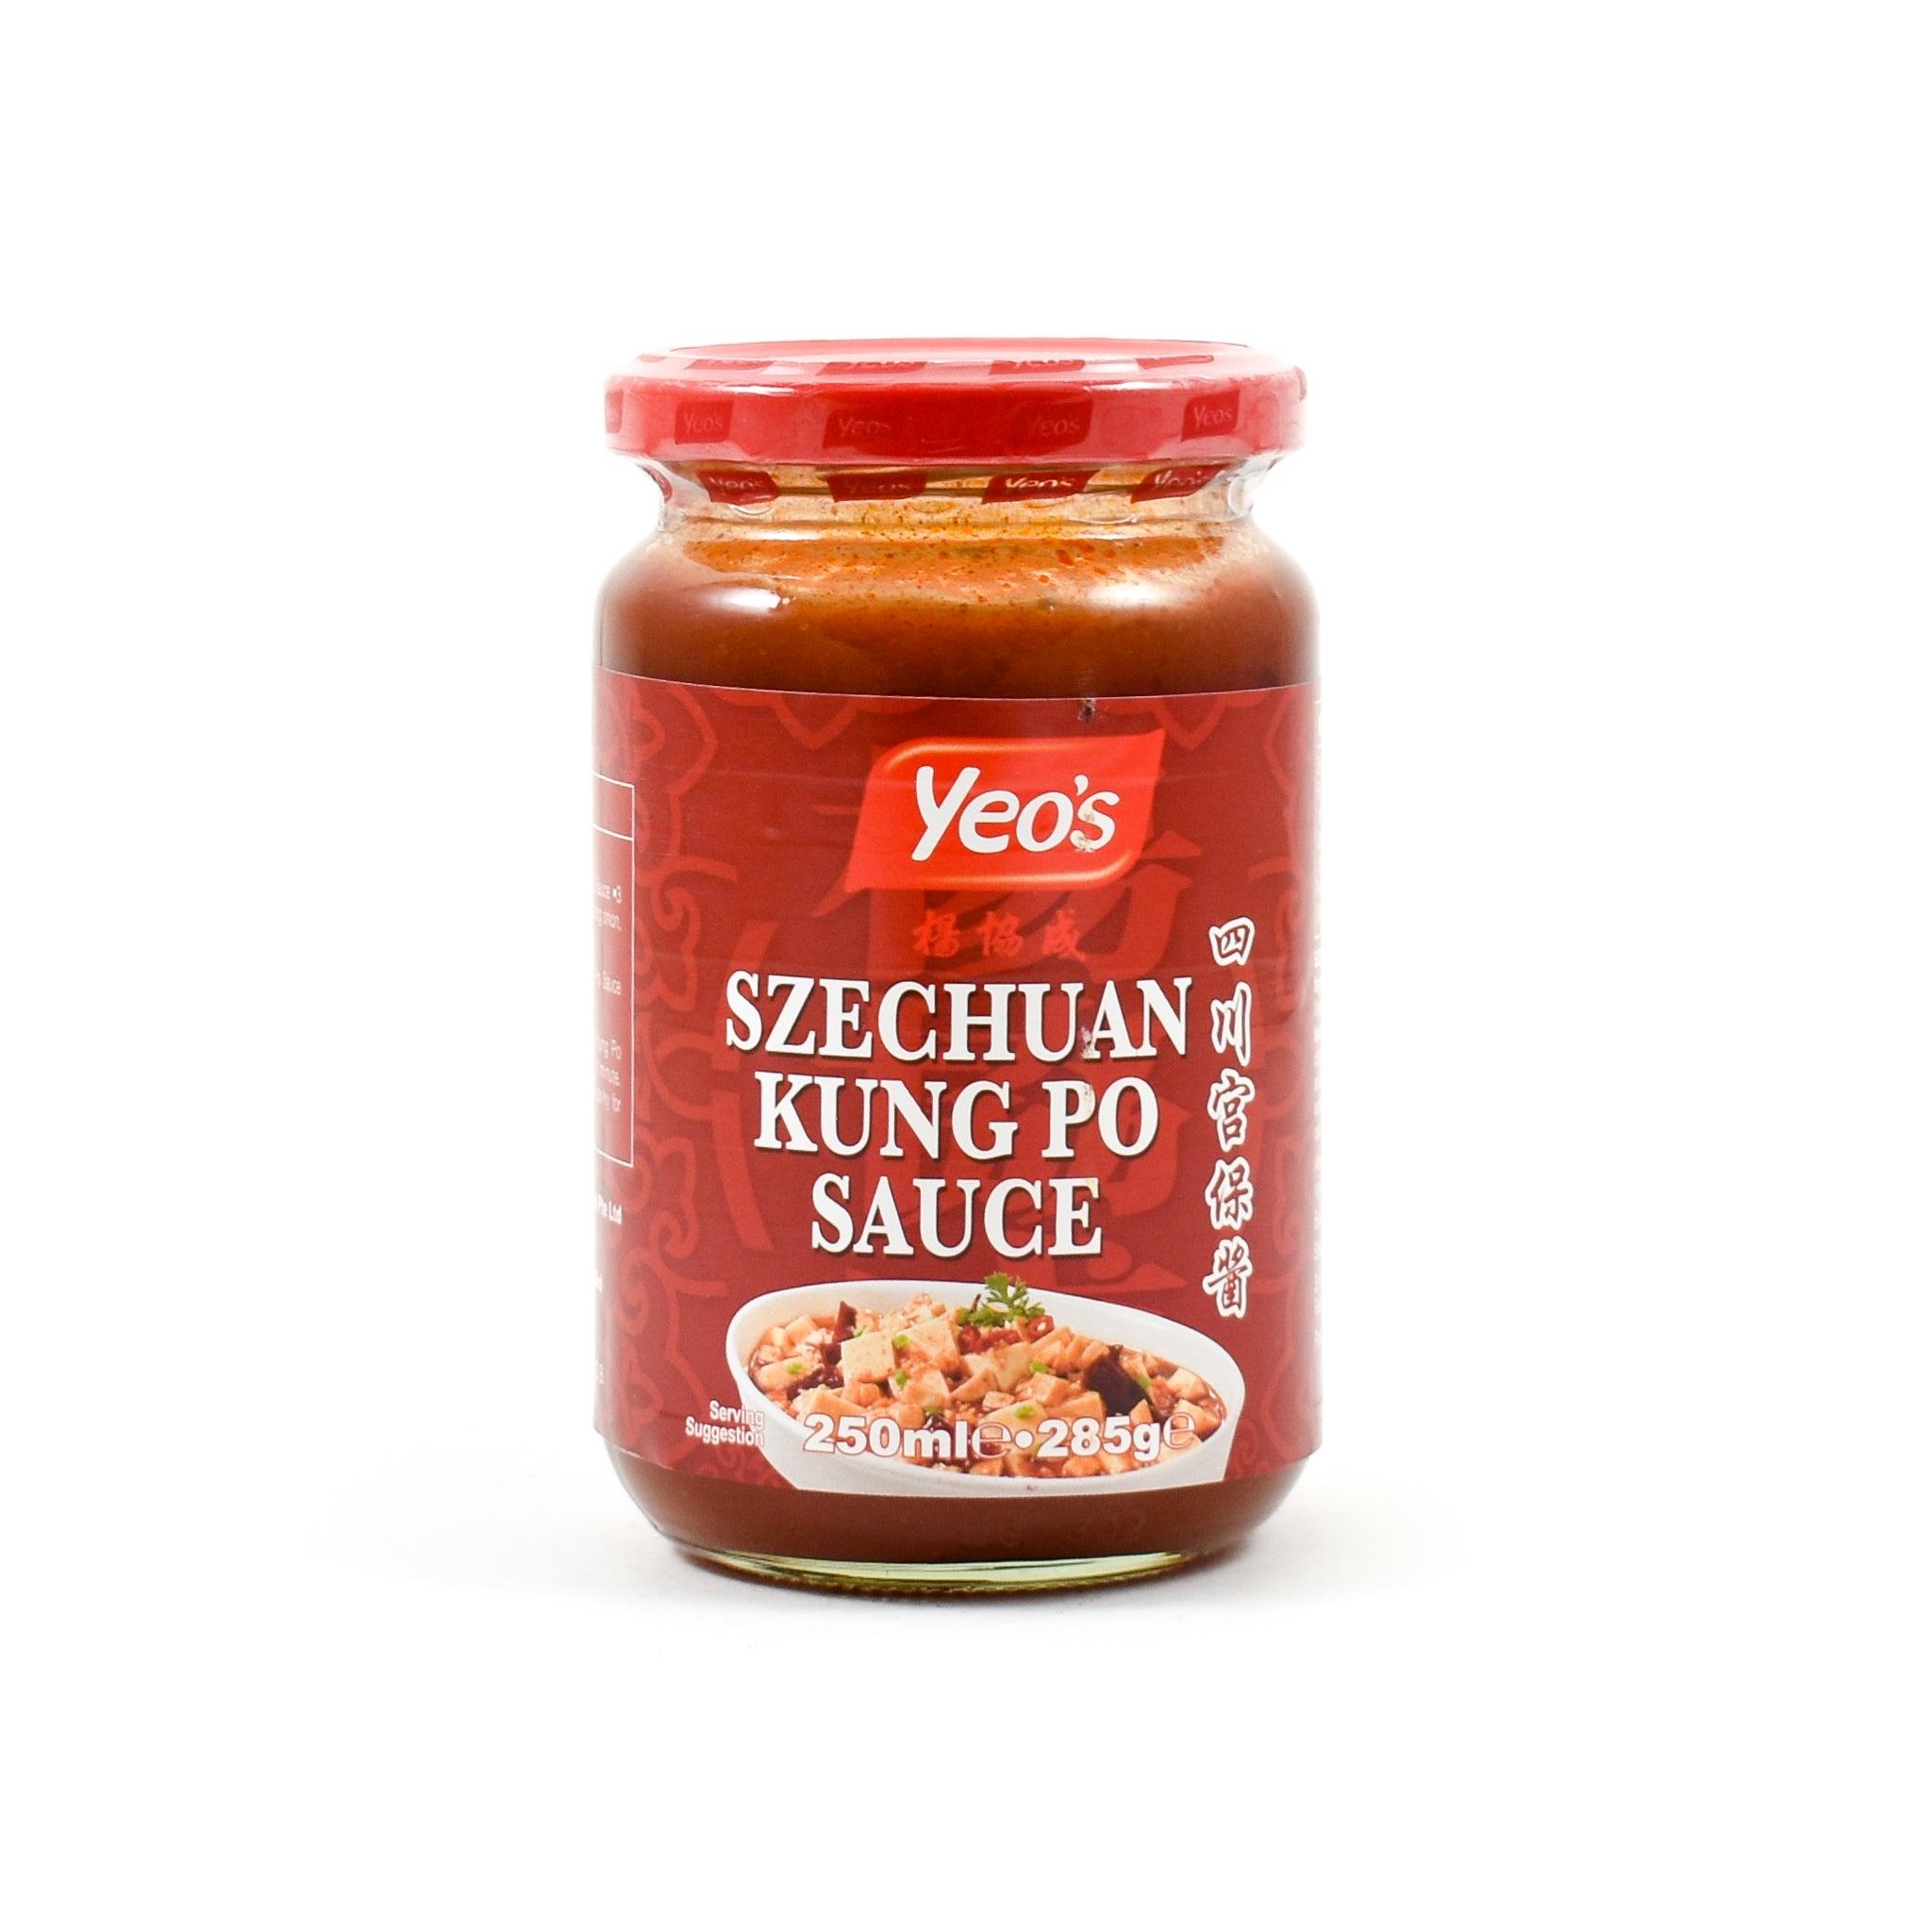 Yeo's Szechuan Kung Po Sauce 250ml Ingredients Sauces & Condiments Asian Sauces & Condiments Southeast Asian Food